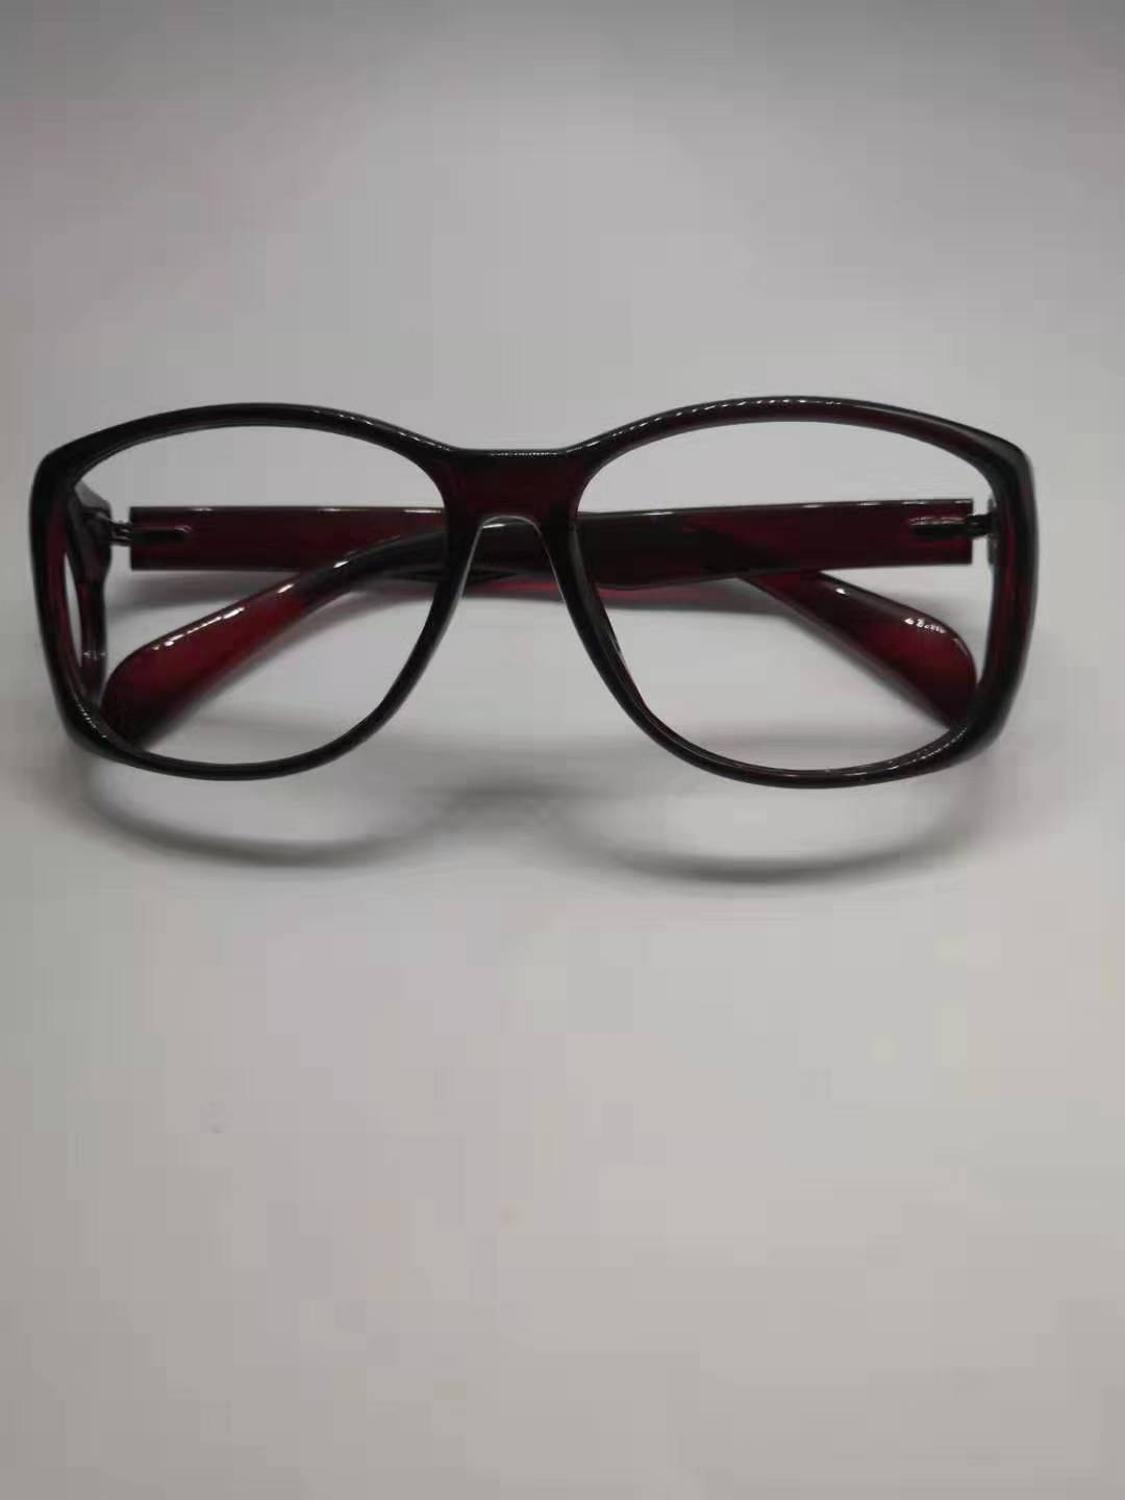 High end ionizing radiation protective Front and side comprehensive protection glasses x-ray shielding 0.5mmpb lead spectacles.